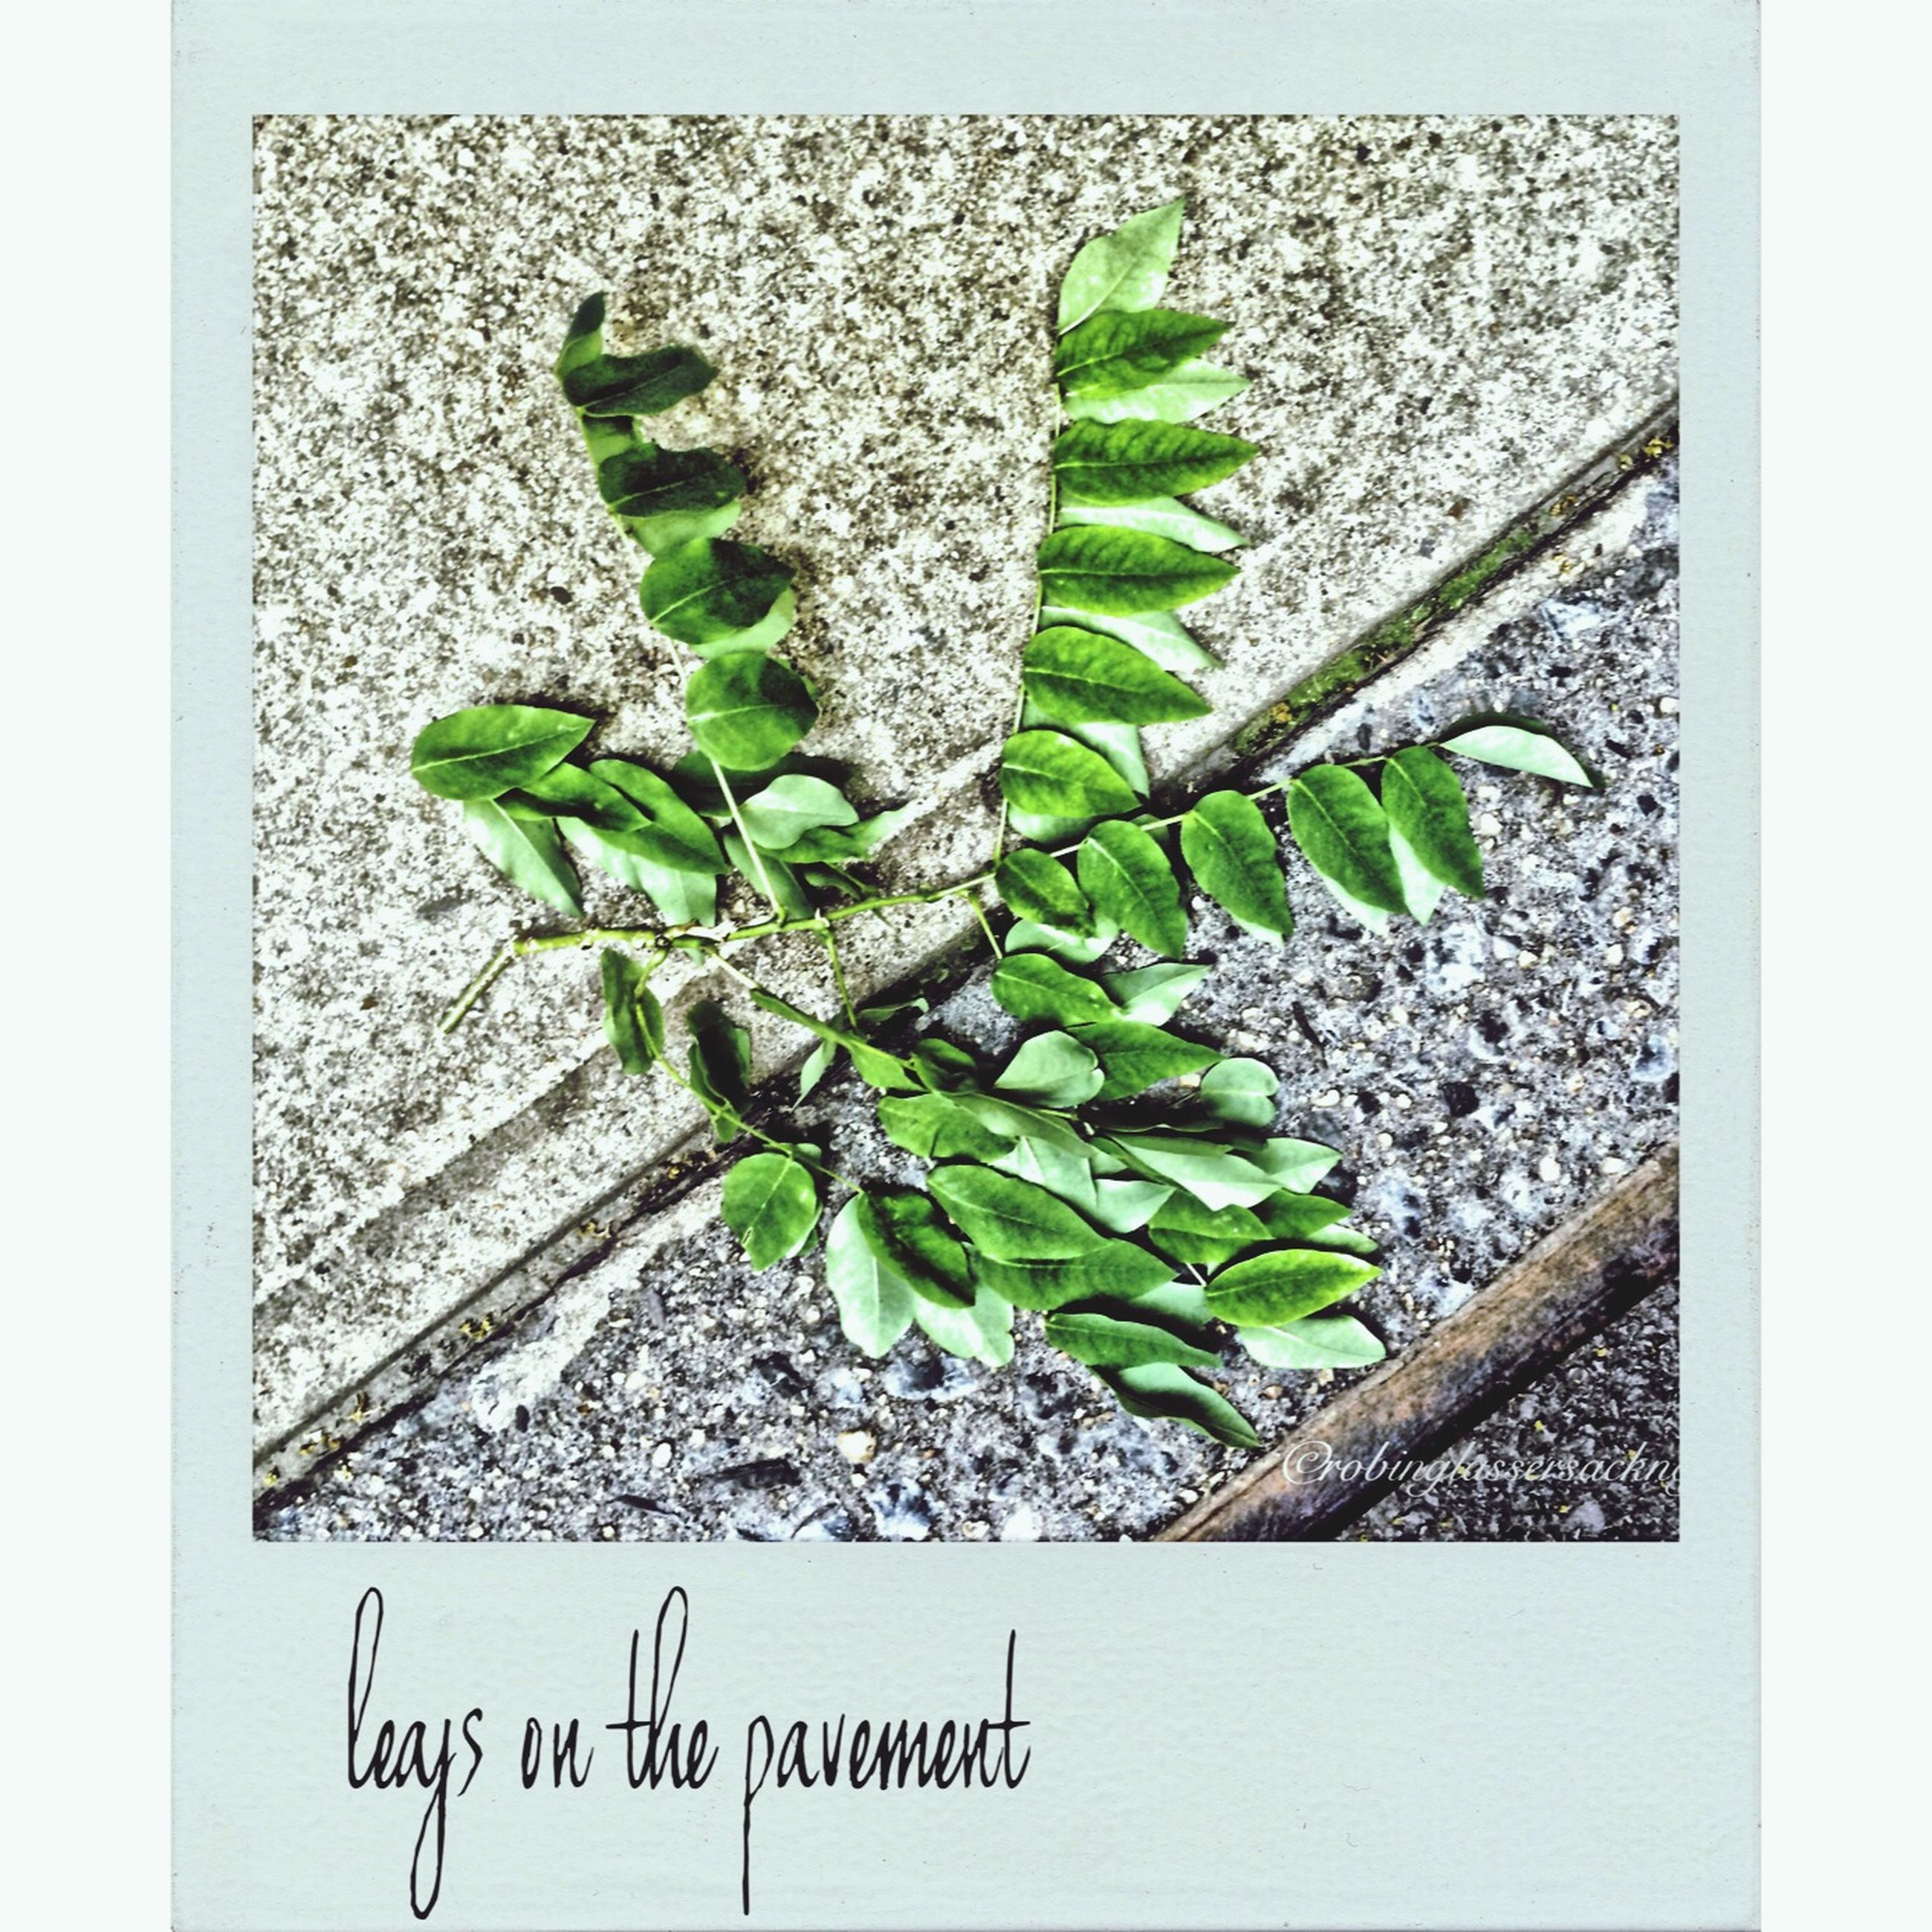 leaf, plant, green color, growth, transfer print, close-up, auto post production filter, nature, green, wall - building feature, day, high angle view, growing, no people, ivy, outdoors, wall, potted plant, text, sunlight